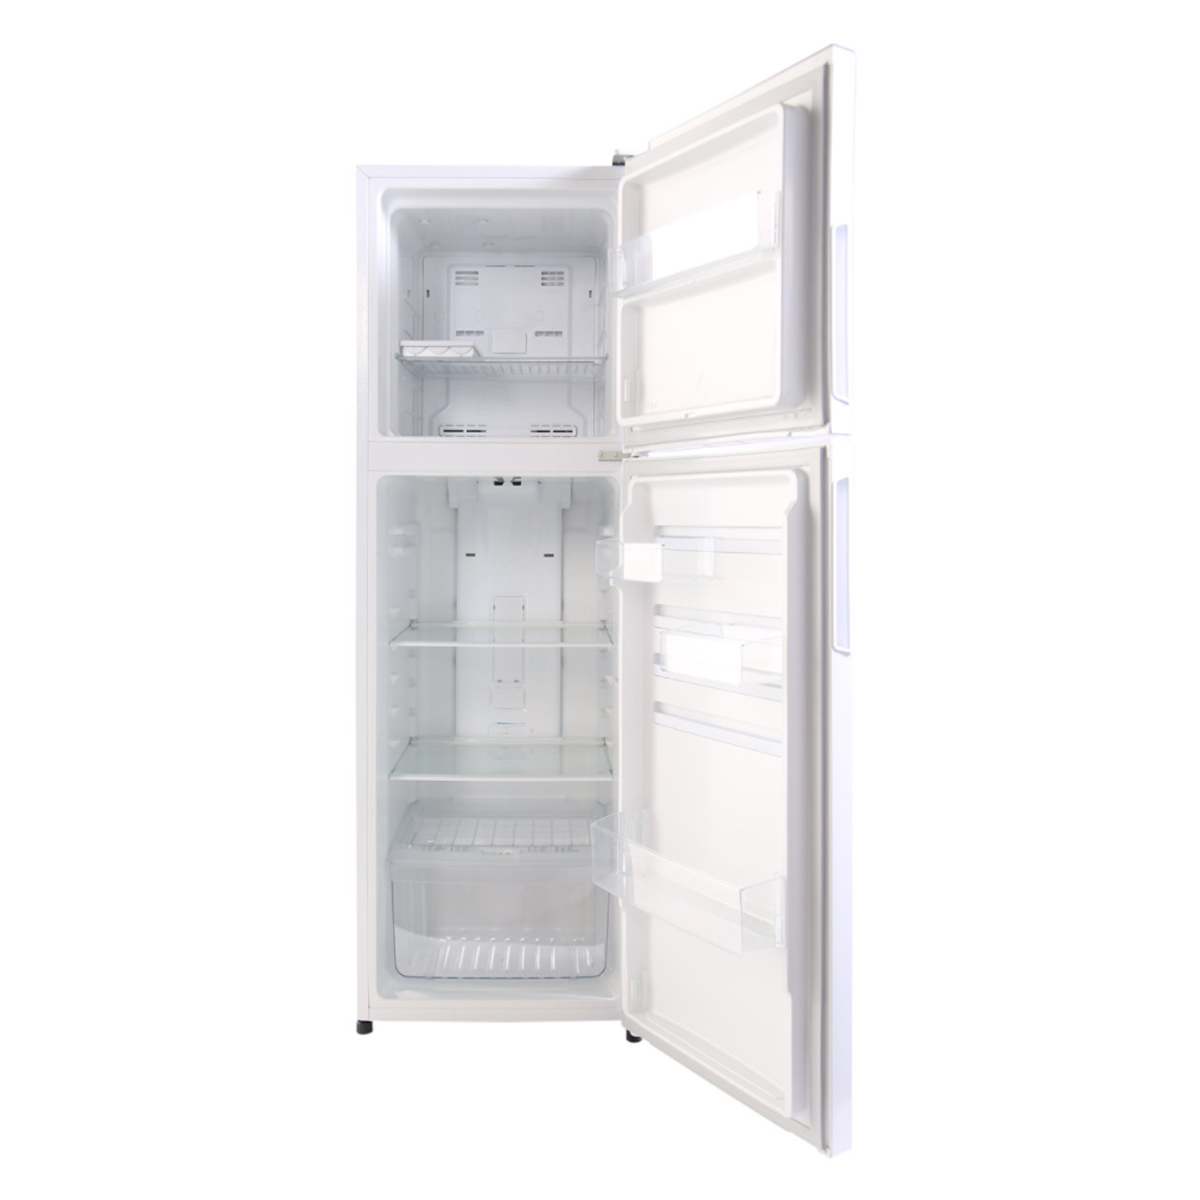 Kelvinator KTB2802WA 275L Top Mount Fridge 56306